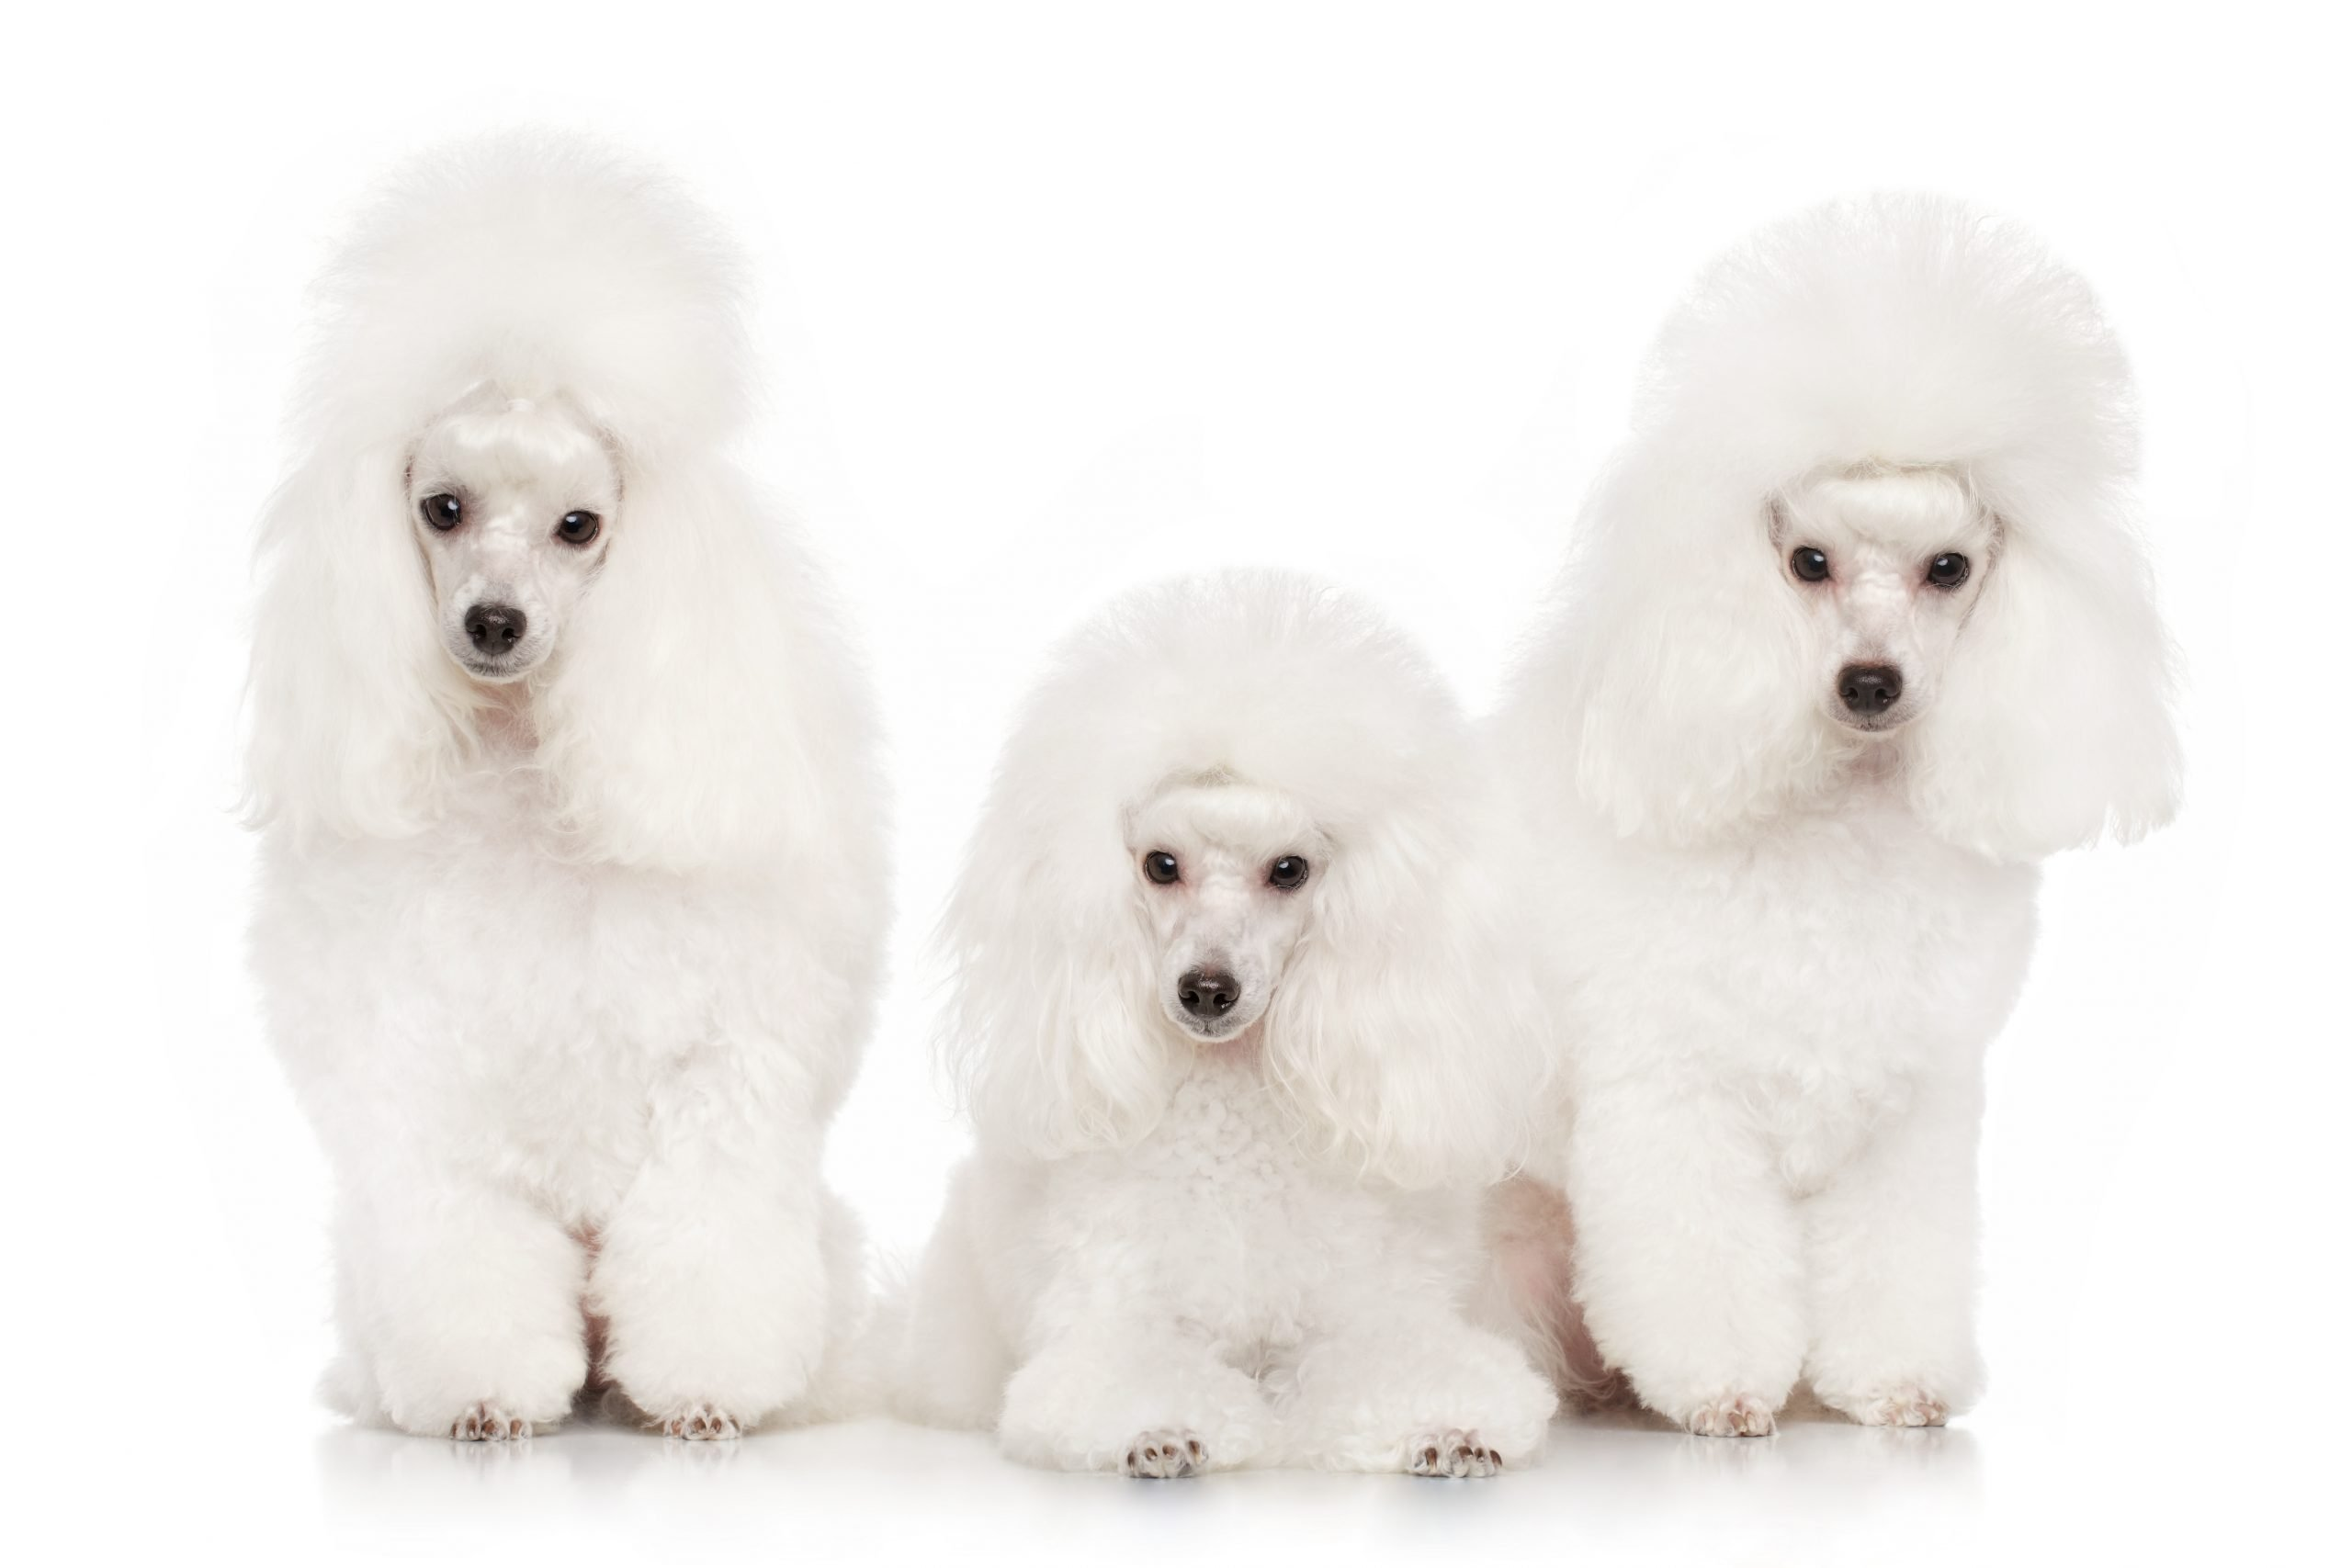 Poodle Breed – Is a Poodle Right for You?